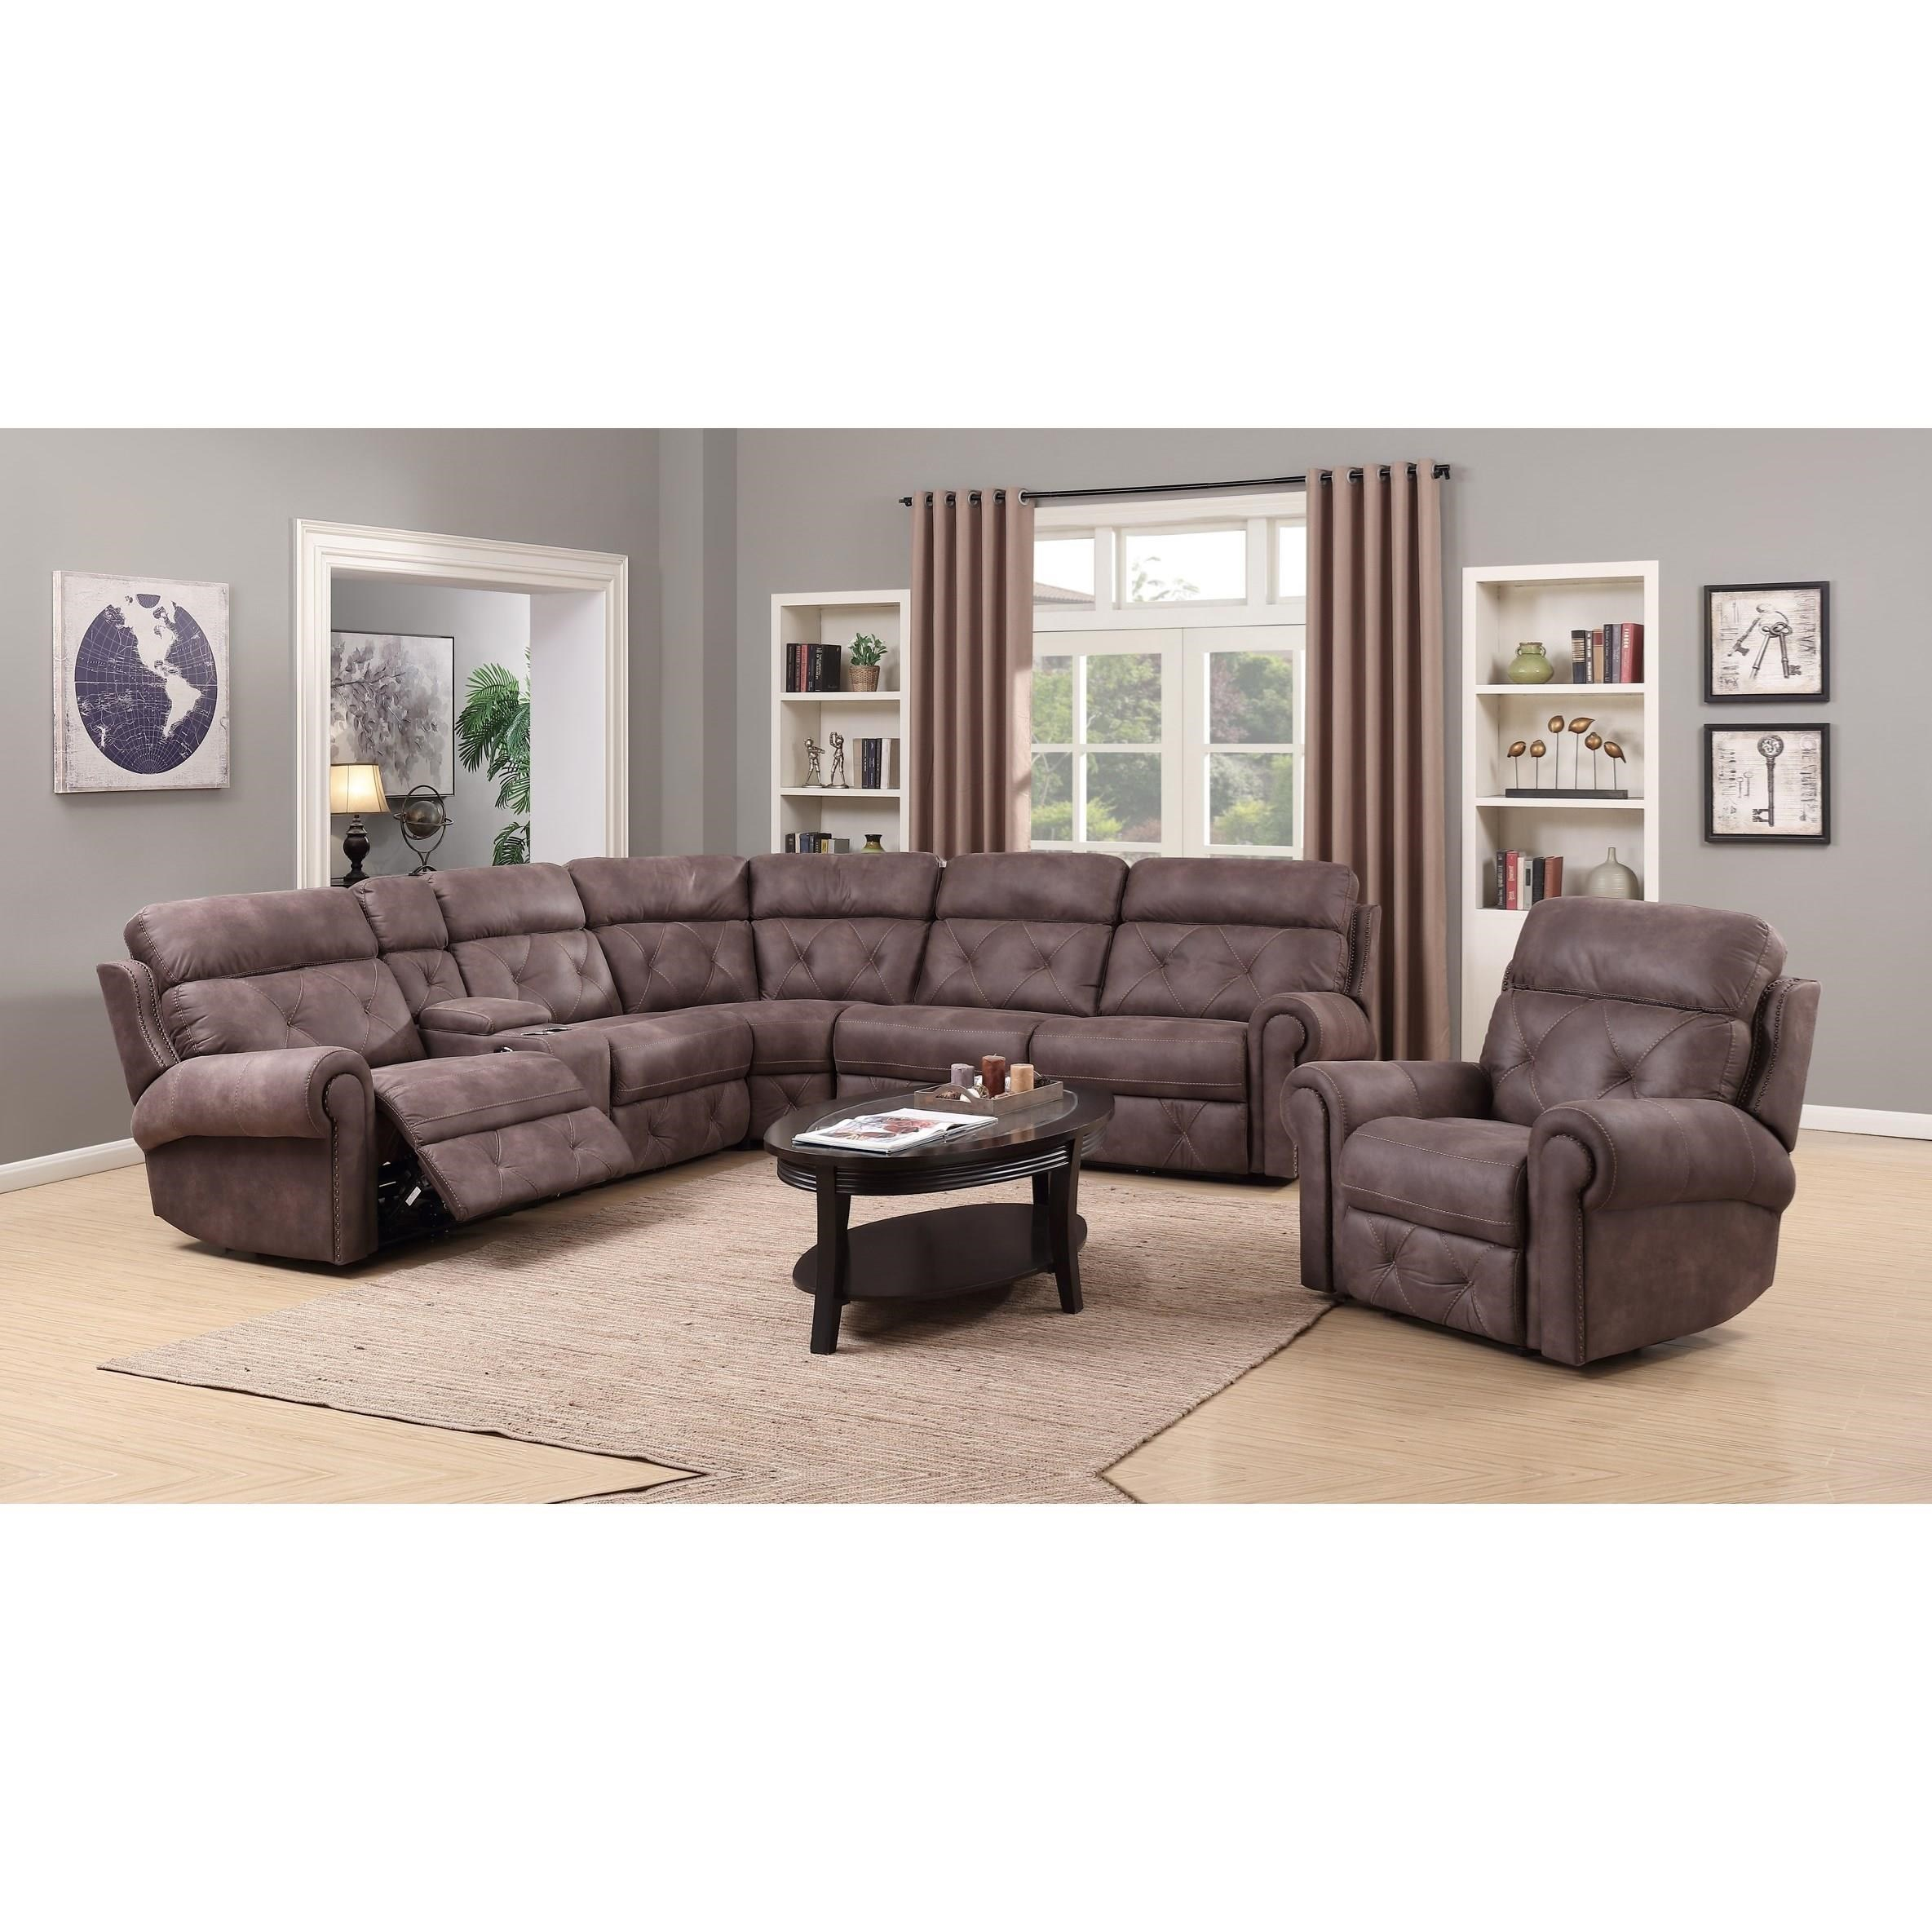 Ordinaire Happy Leather Company 1378Power Reclining